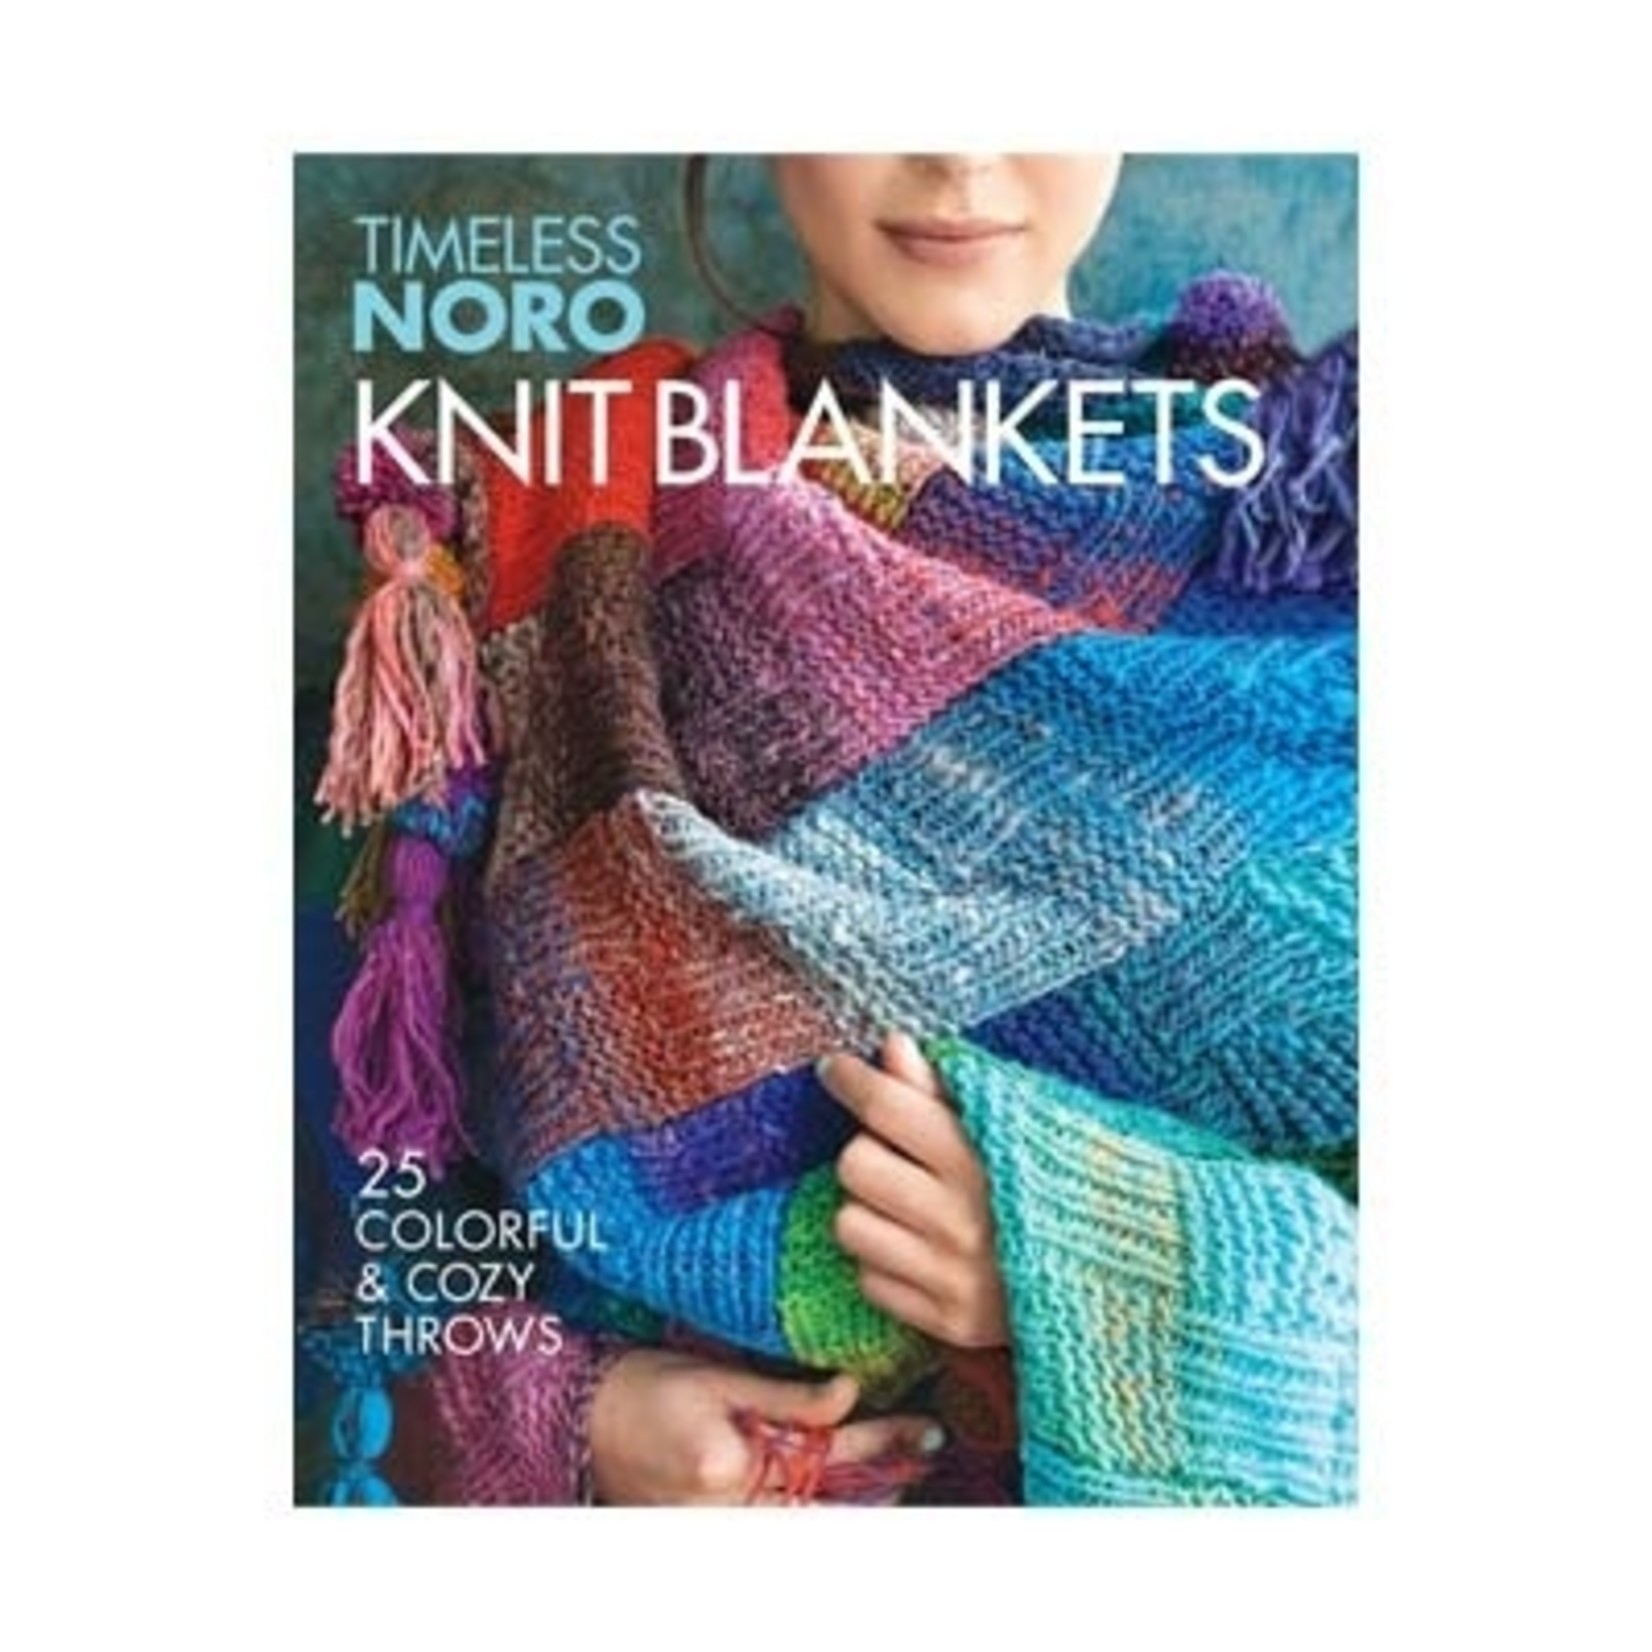 Noro Knit Blankets - 25 Colorful & Cozy Throws